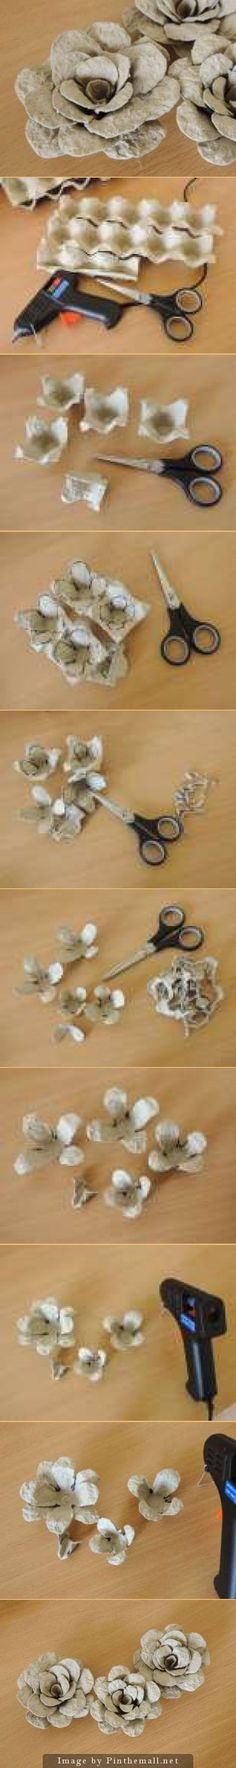 The whole detailed photo tutorial on how to make these egg carton flowers - Tutorial foto: trandafiri din cofraje de ou | Atelierul Grdina cu fluturi: